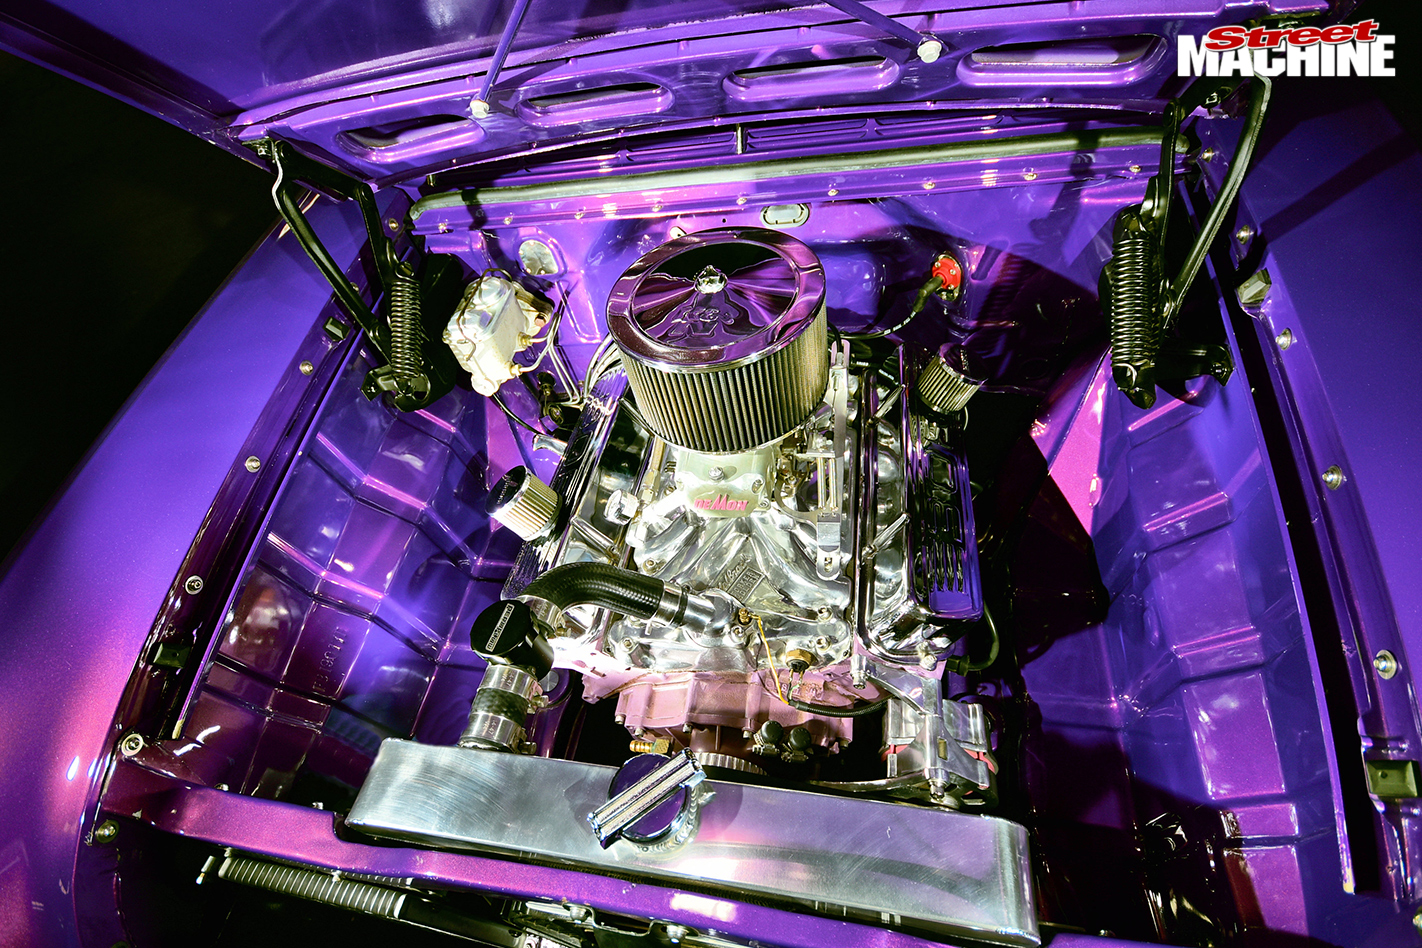 FB-HOLDEN-READER'S-CAR-OF-THE-WEEK-engine